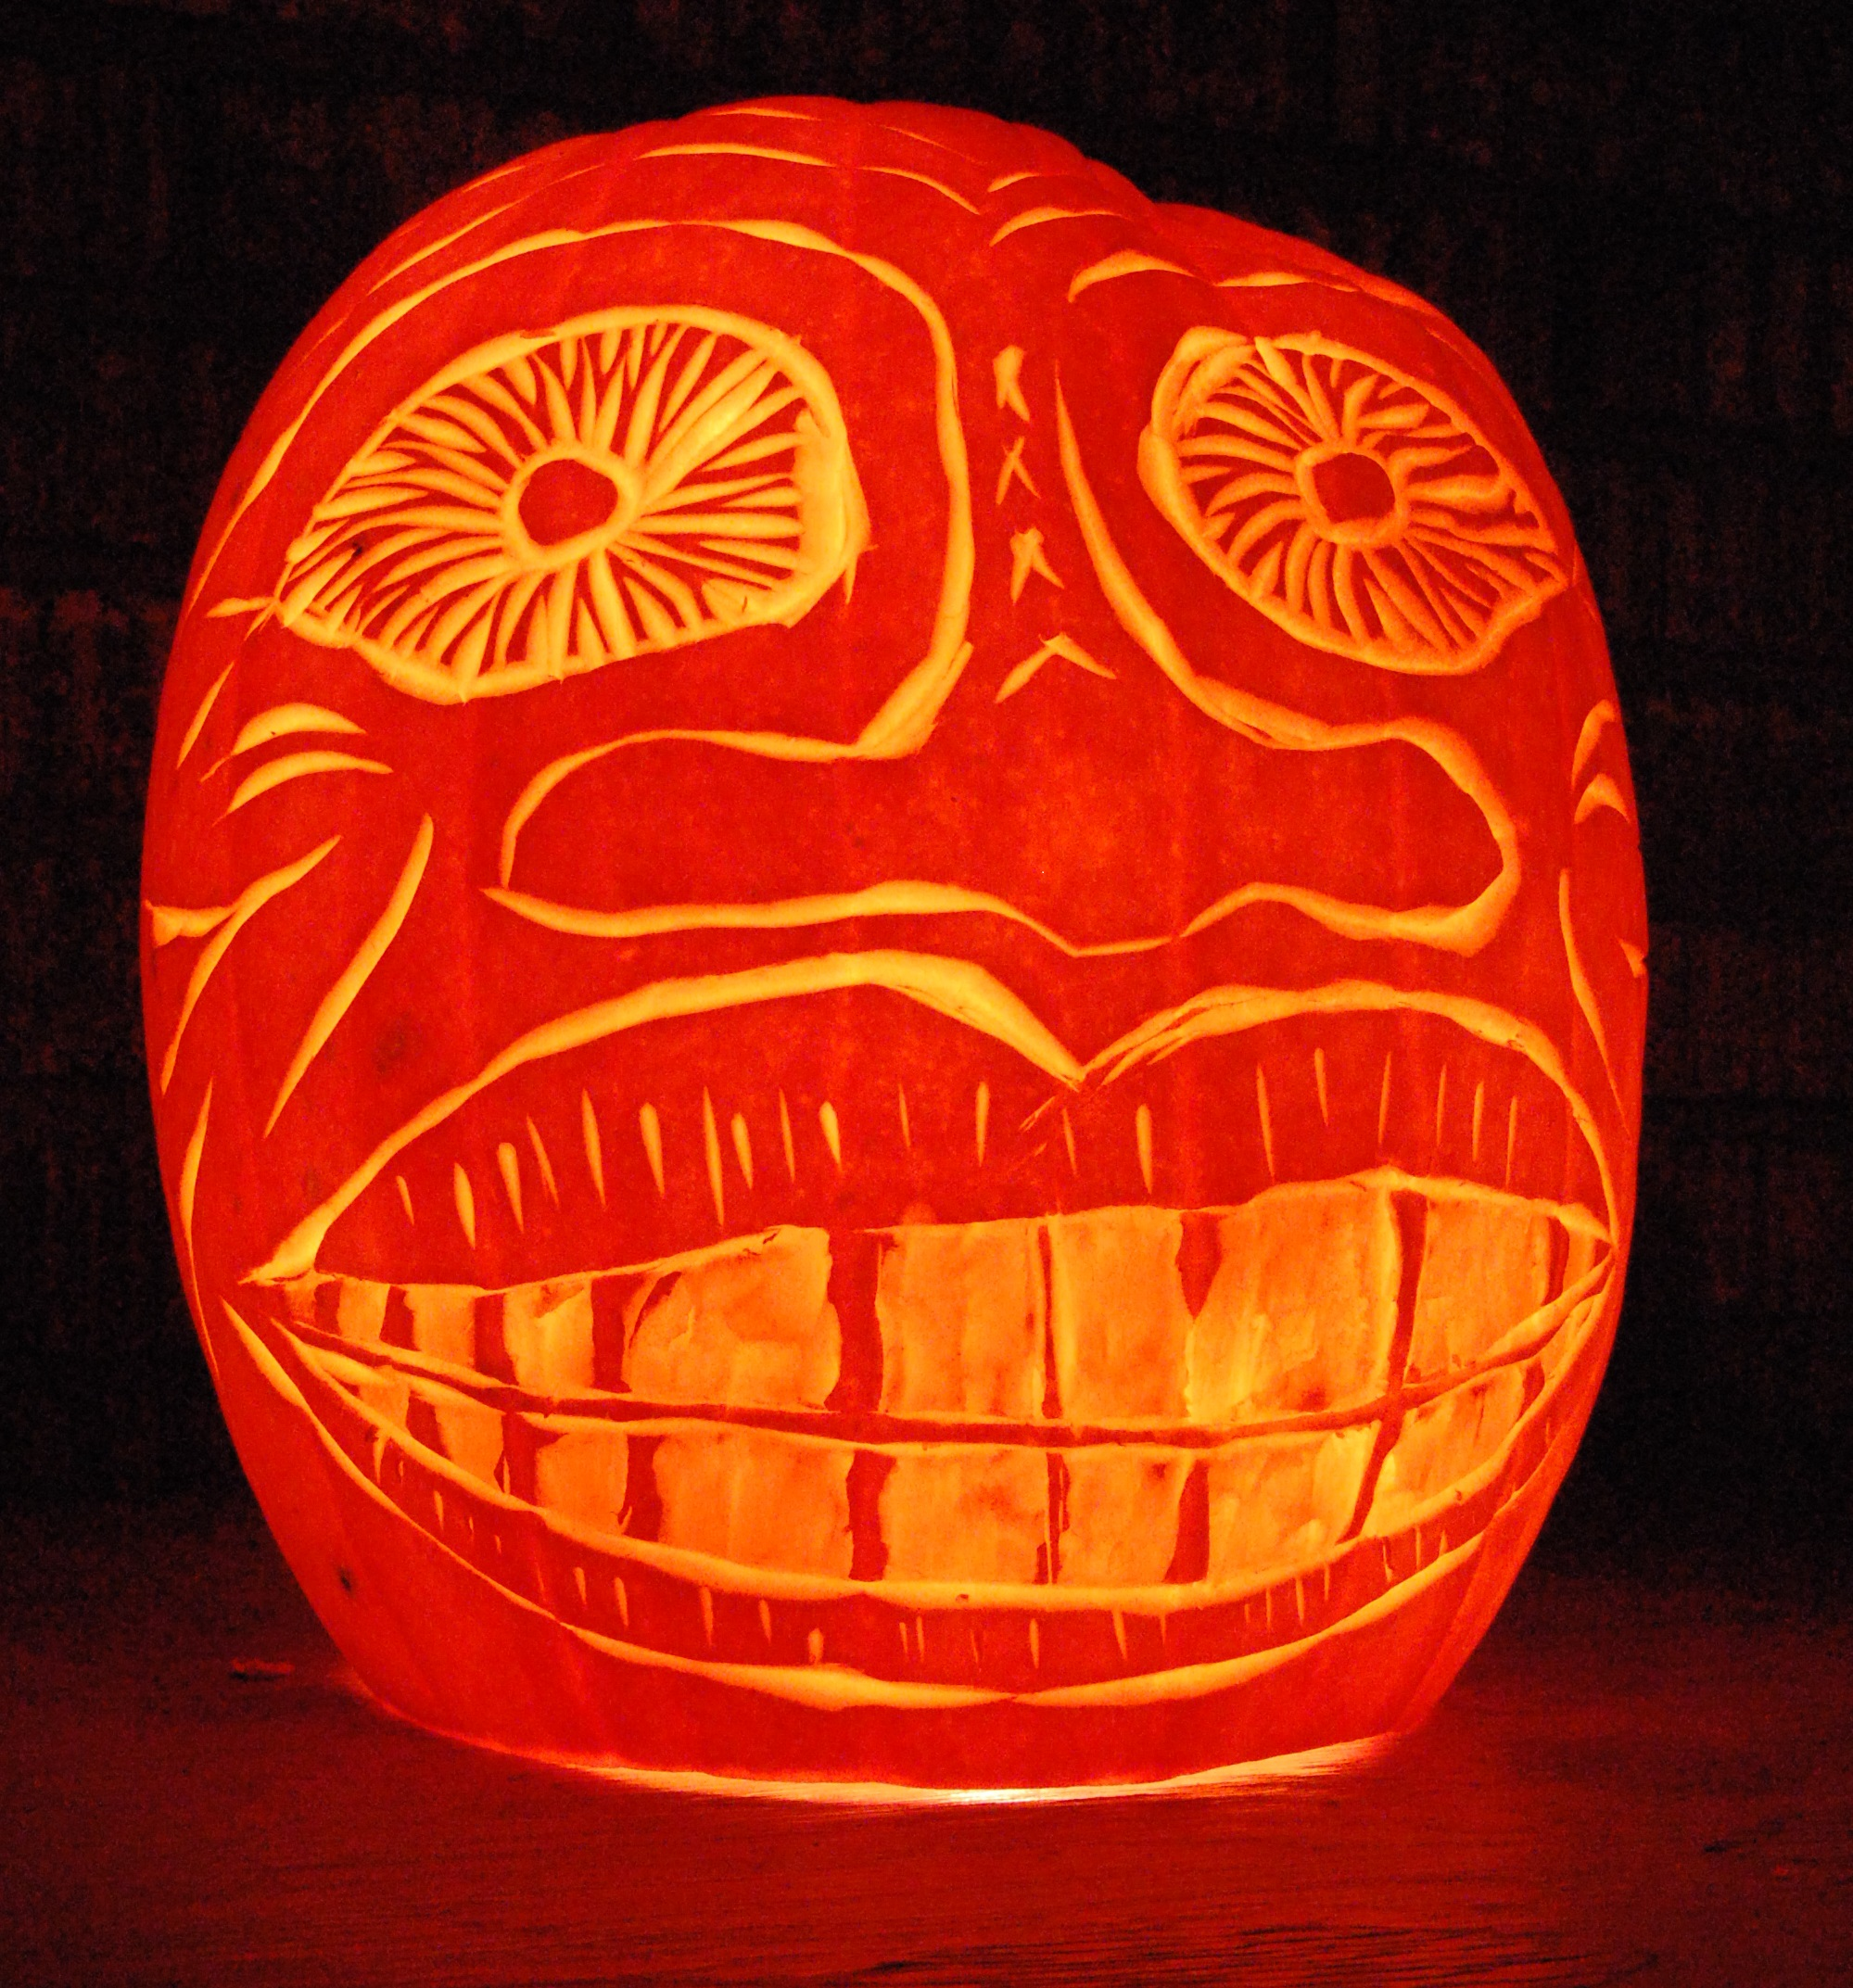 Picture of Jacked O Lantern